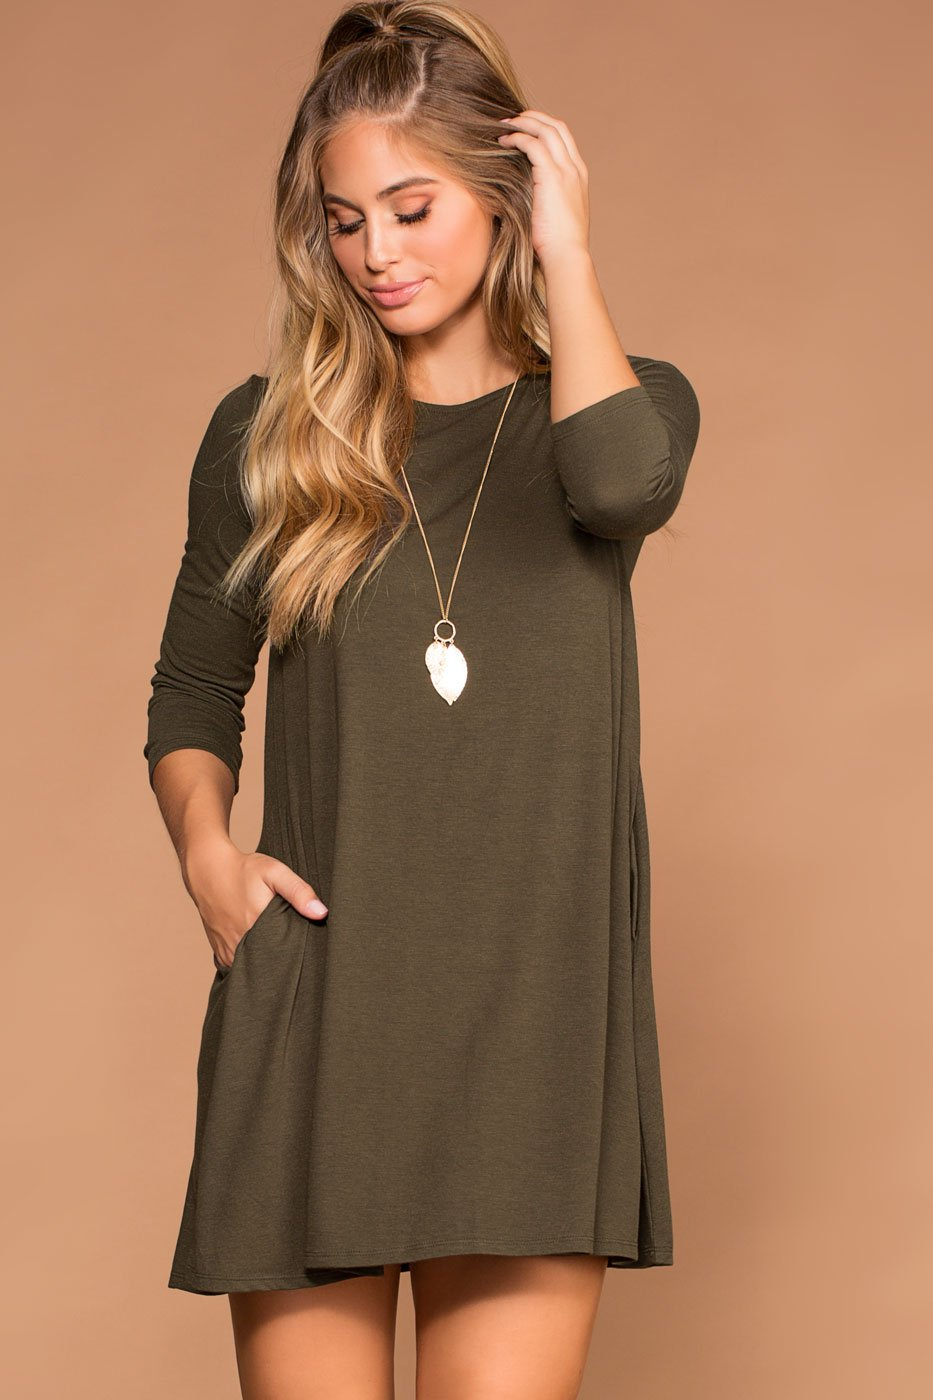 Dresses - Catching Leaves Swing Pocket Dress - Olive